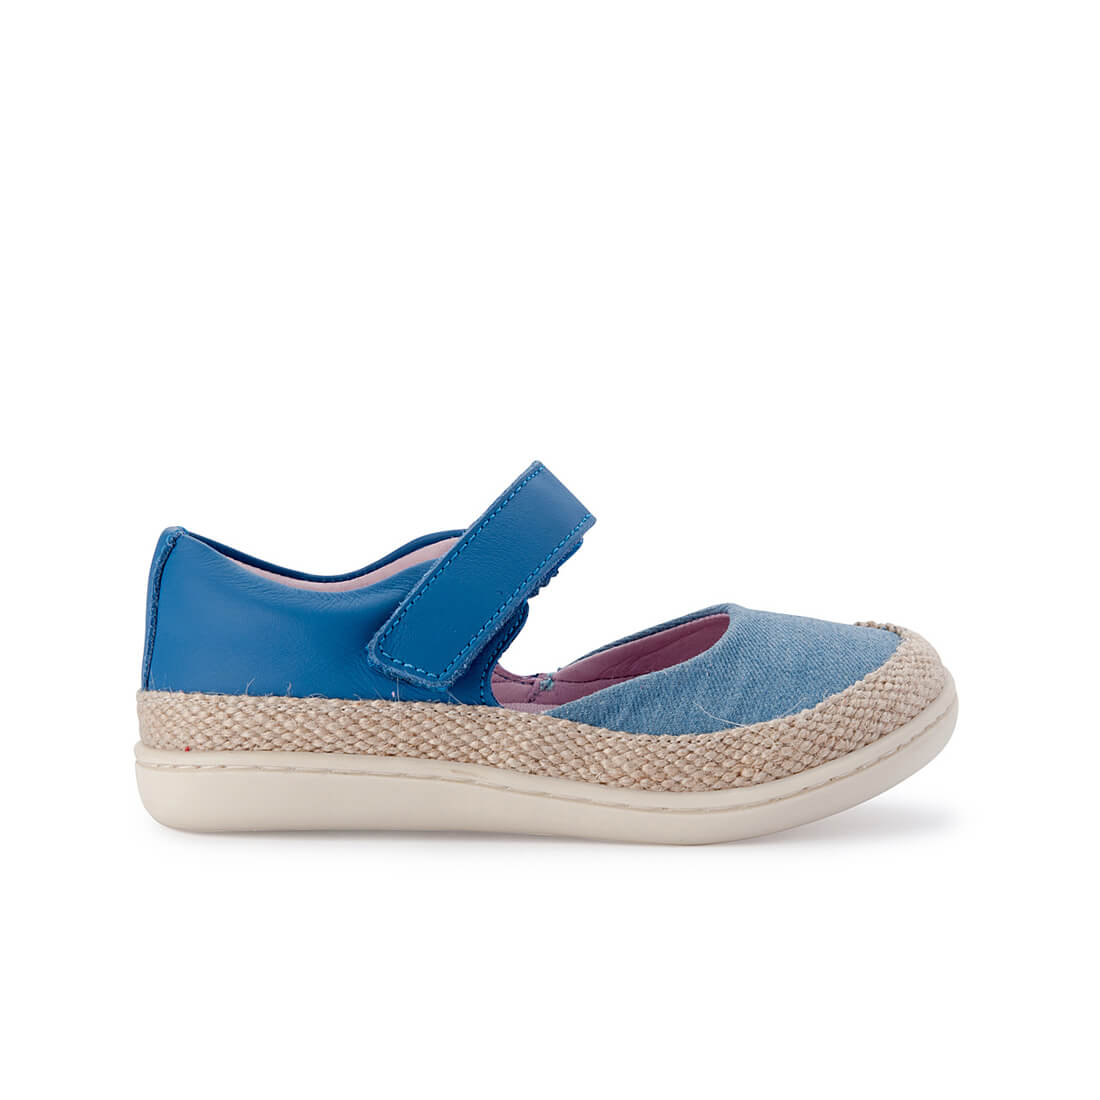 Little Seaside Sandals - Denim Espadrille side